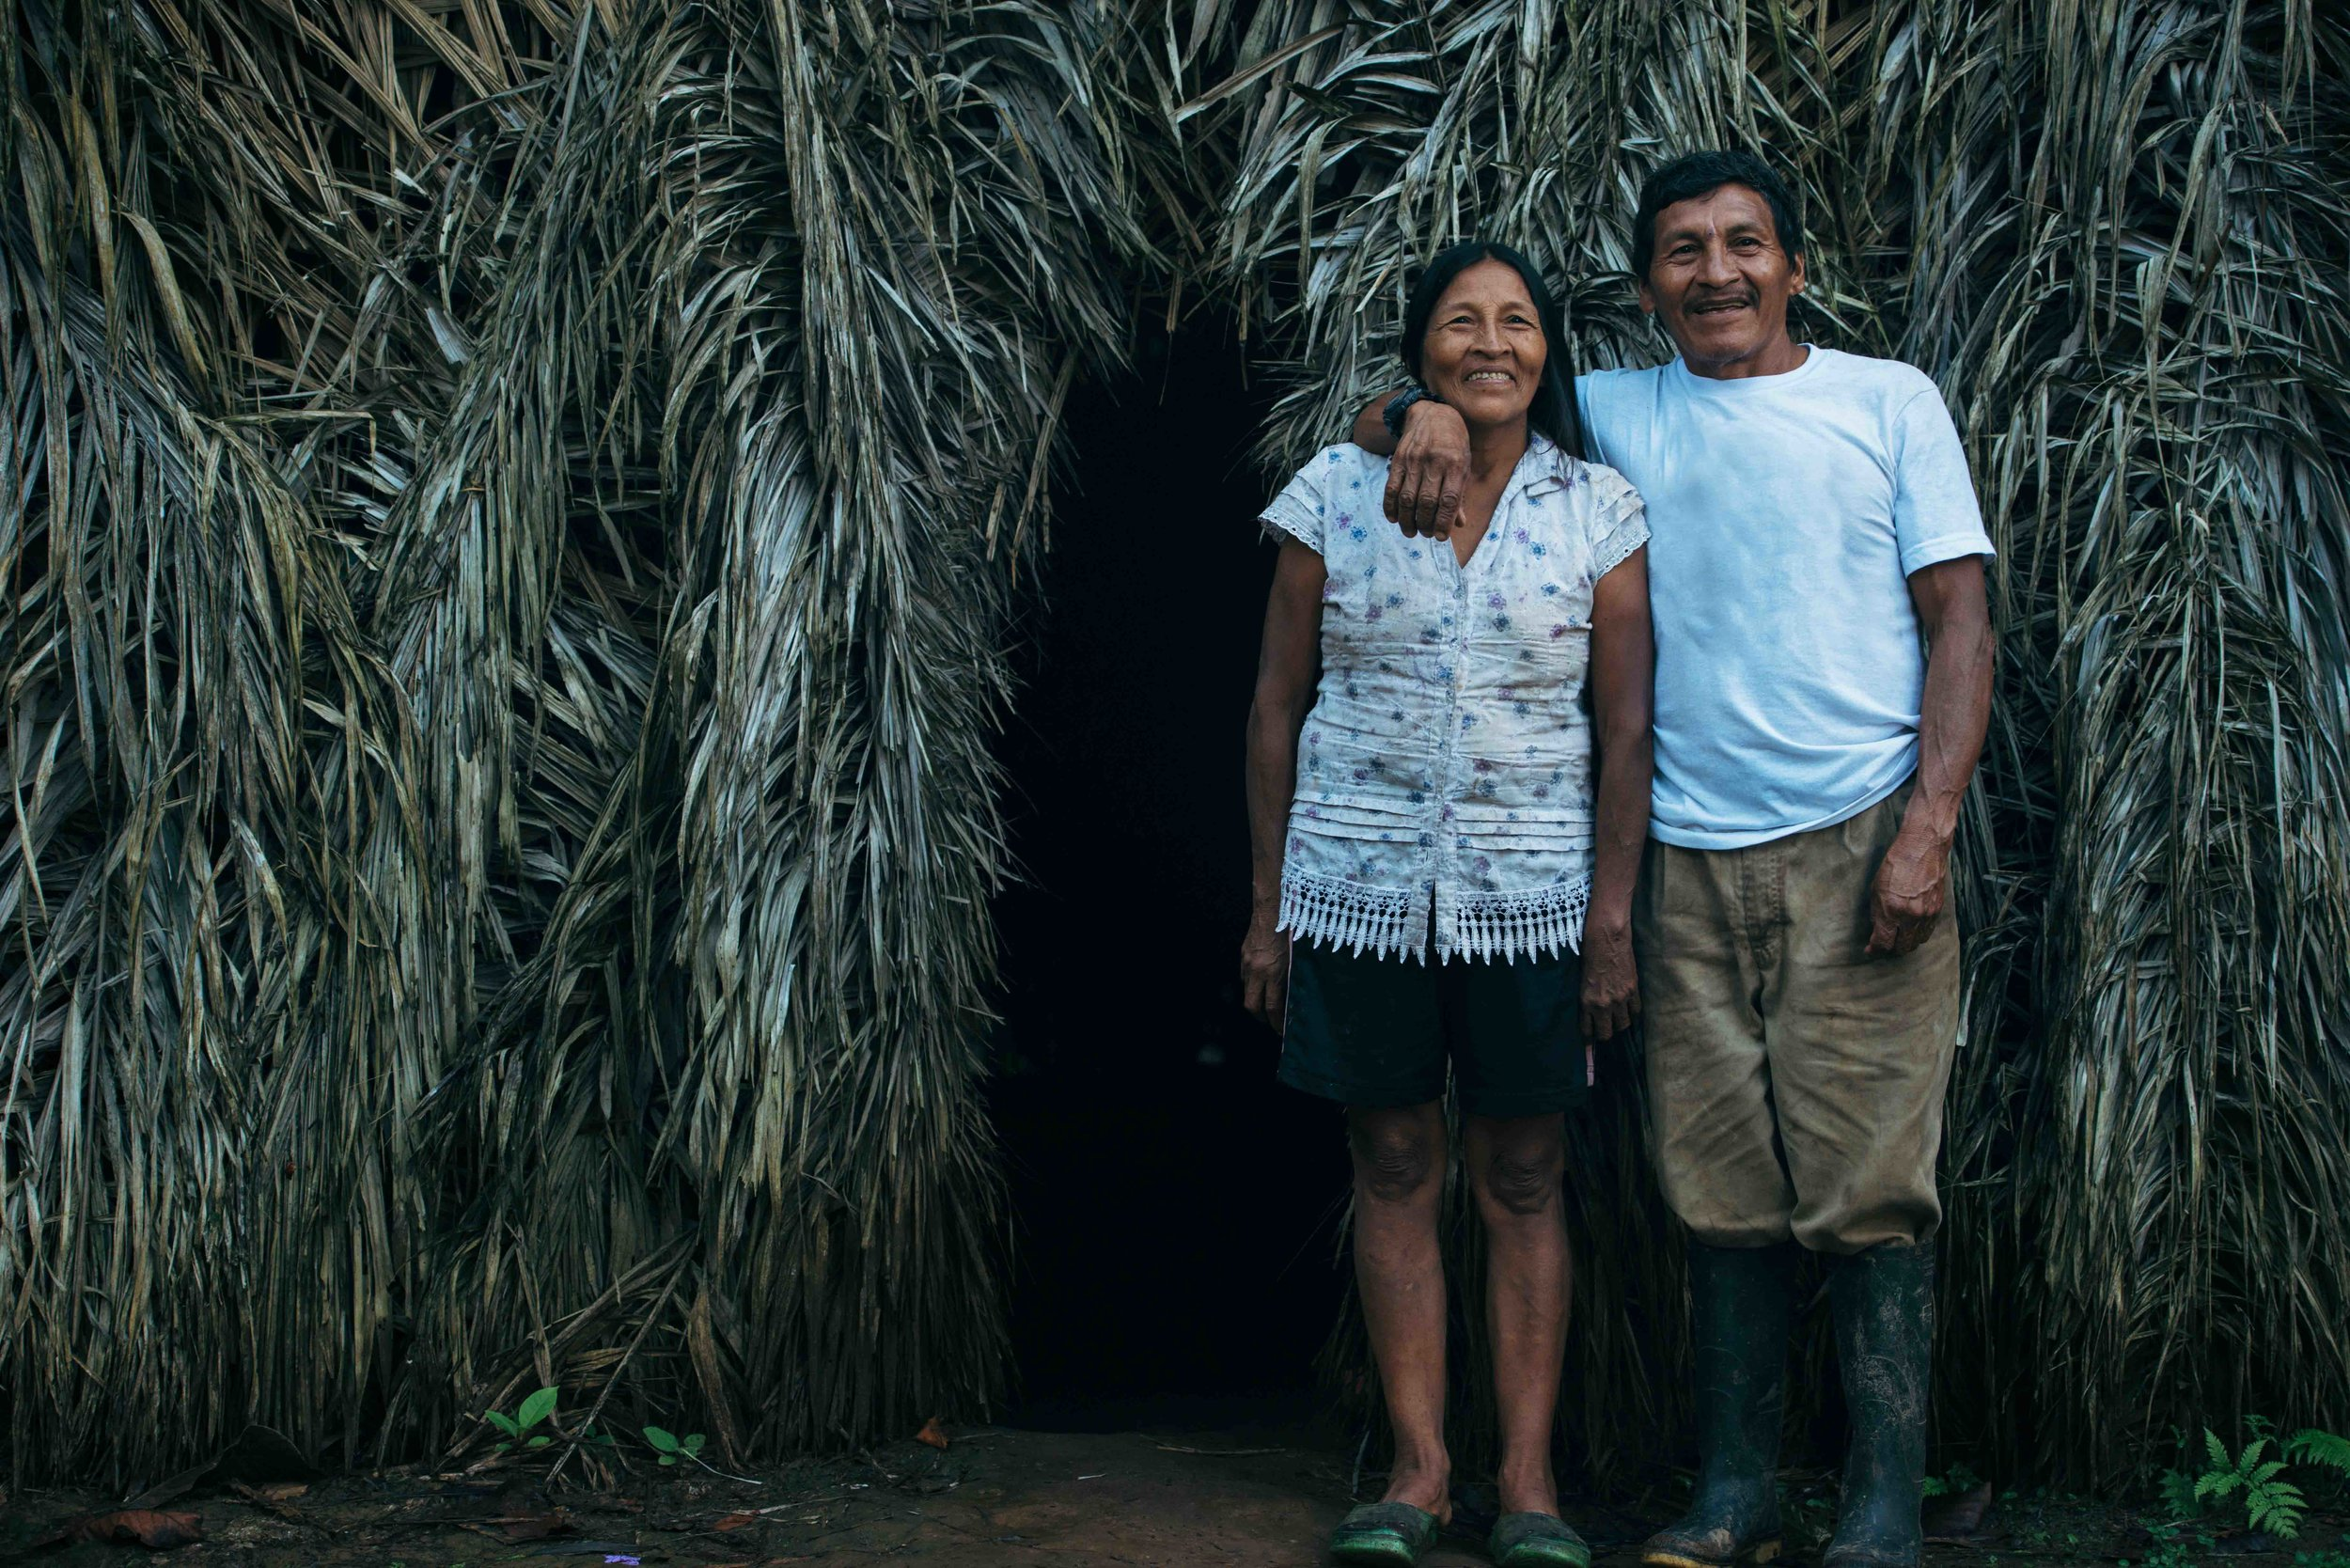 Ore with his wife in front of their house in Gomataon.///Ore mit seiner Frau vor ihrem Haus in Gomataon.